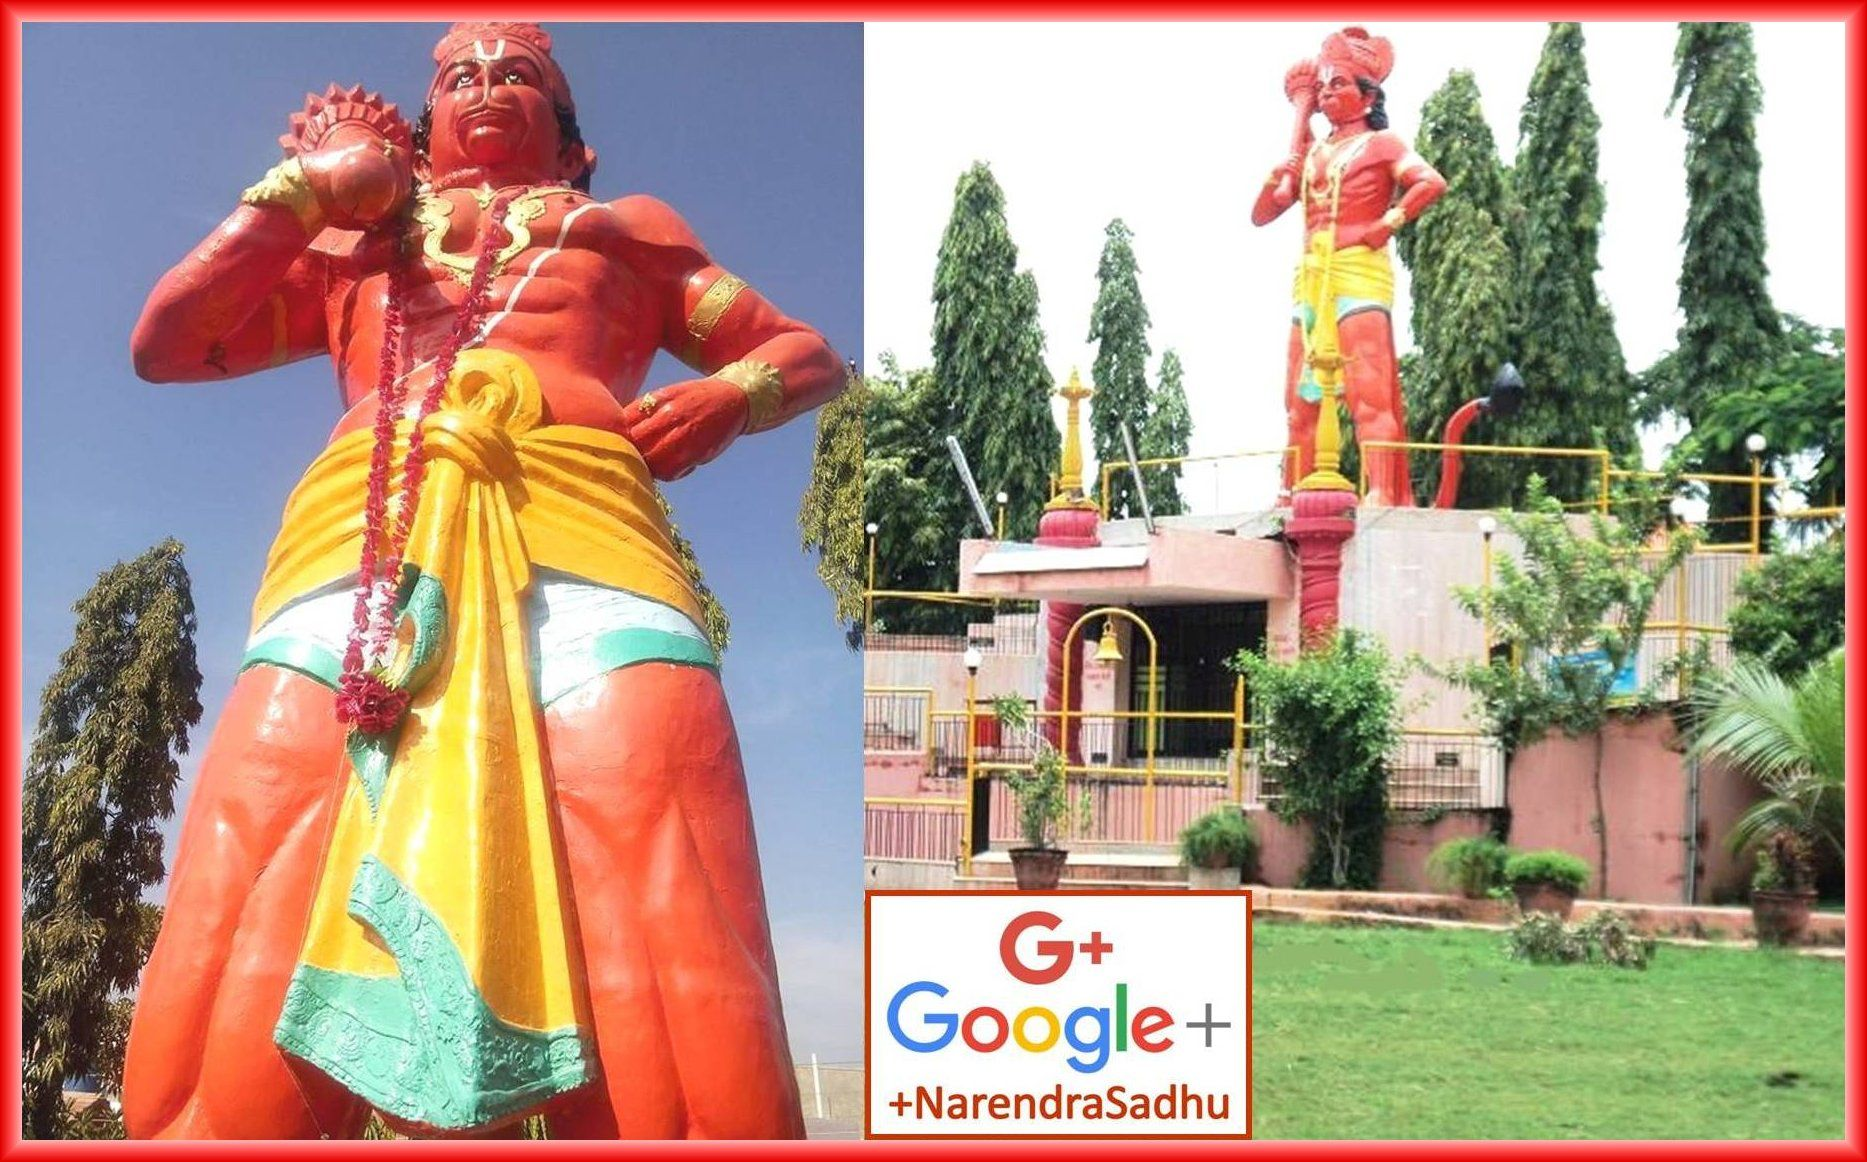 25 Feet Height Scarlet Color Big Sculpture Of Lord Hanuman Is